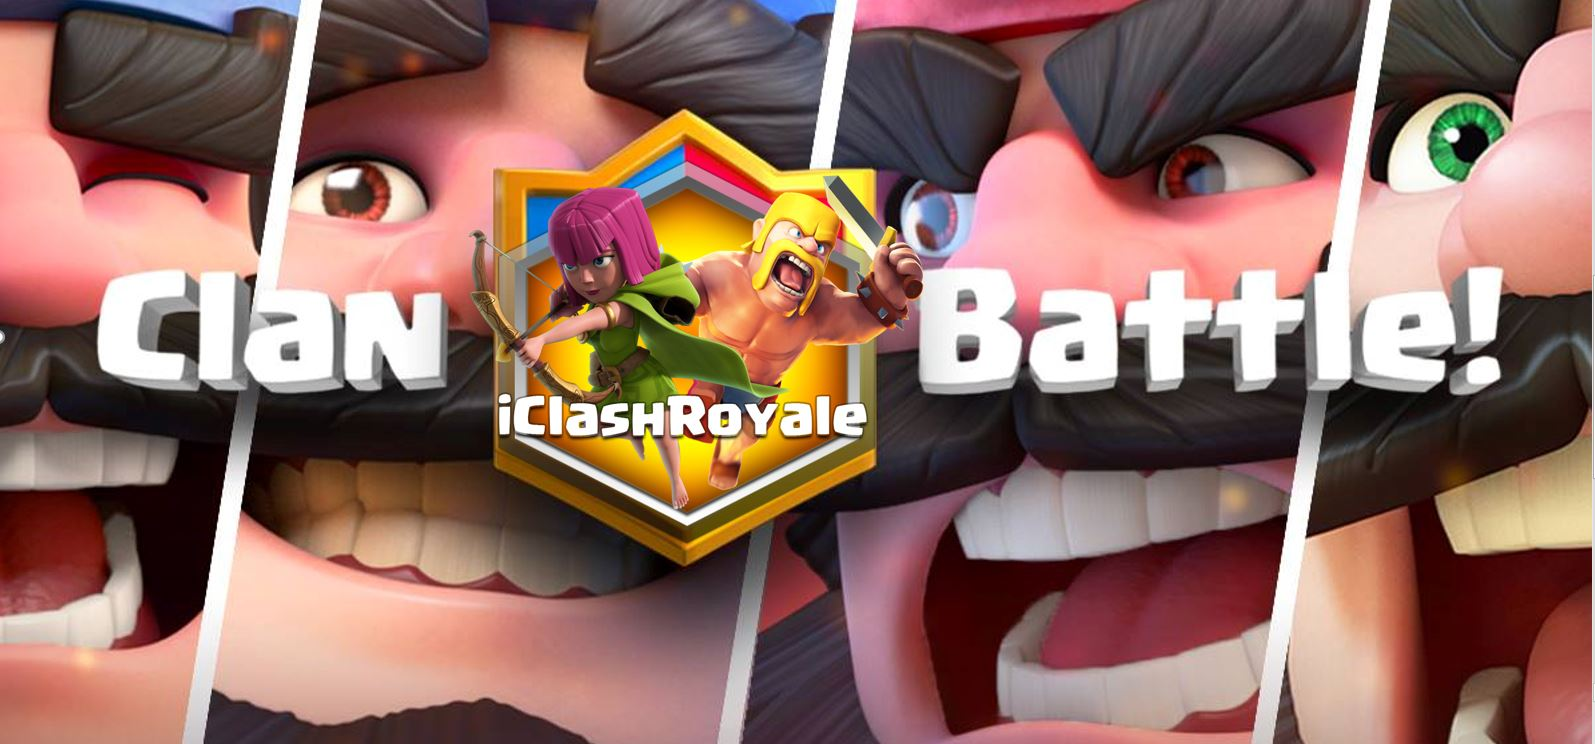 clan battle, team battle, clash royale